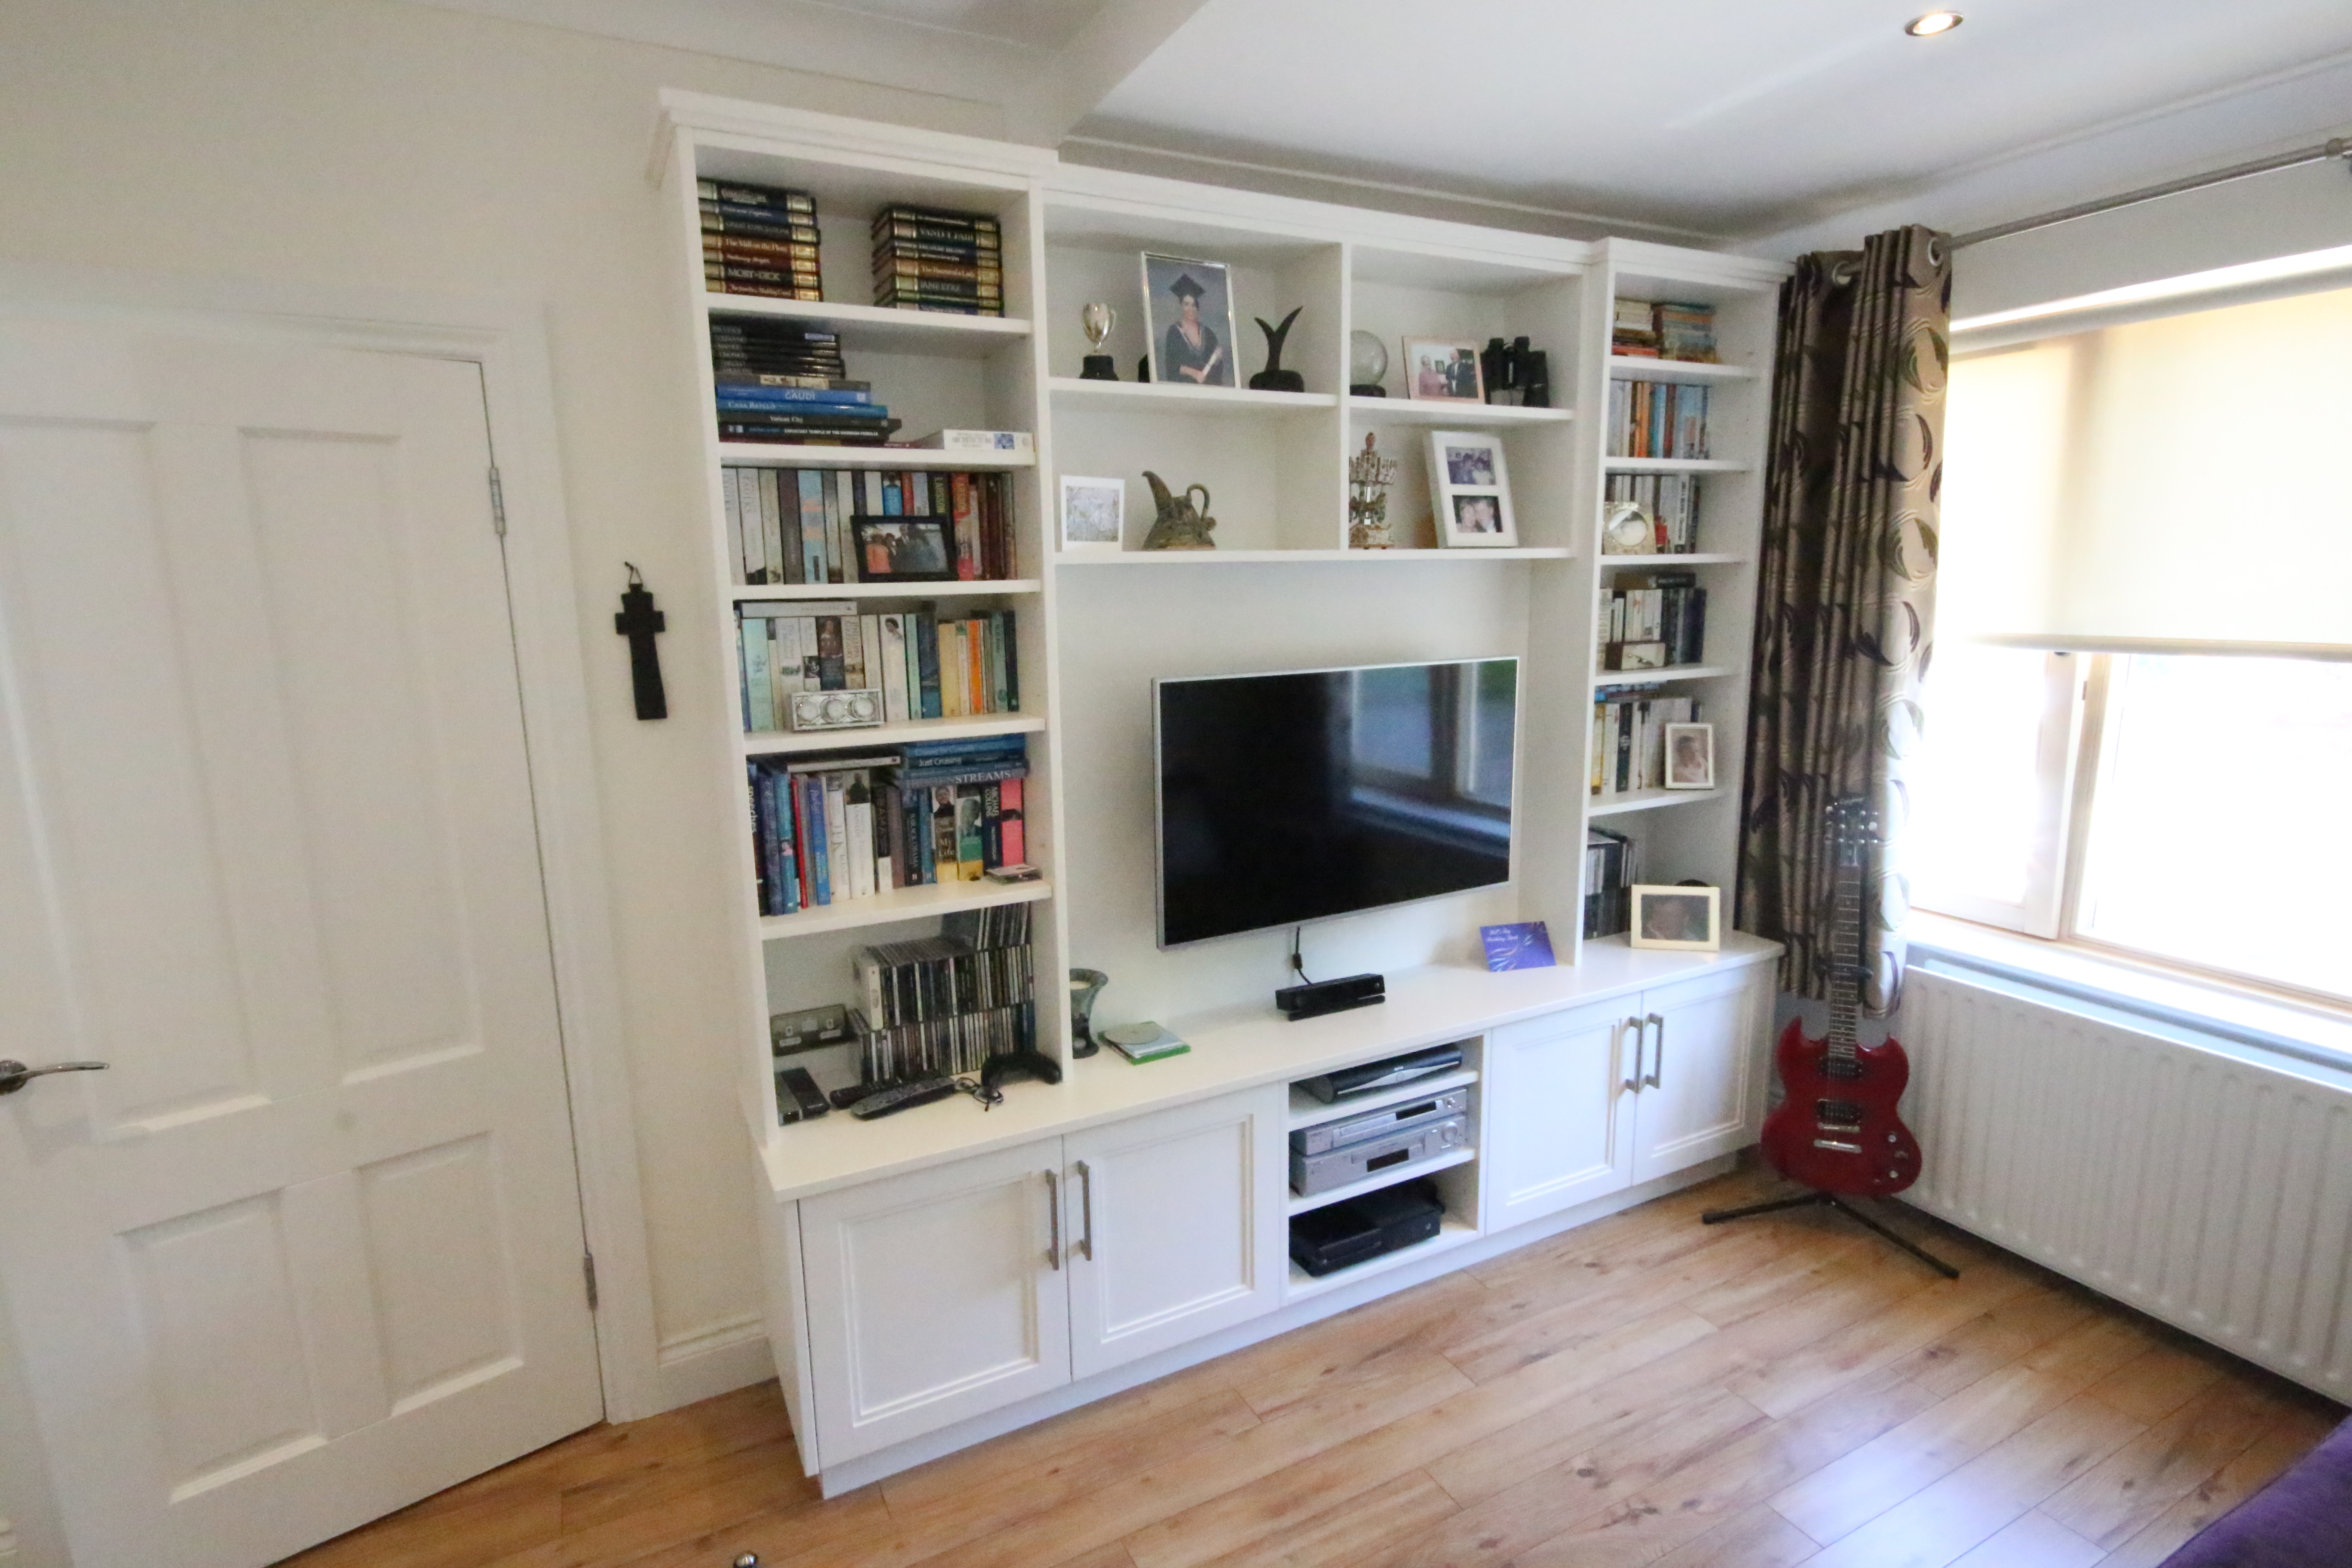 Enigma Design Tv Unit In Stepped Shaker Style With Regard To Bespoke Tv Units (View 11 of 15)